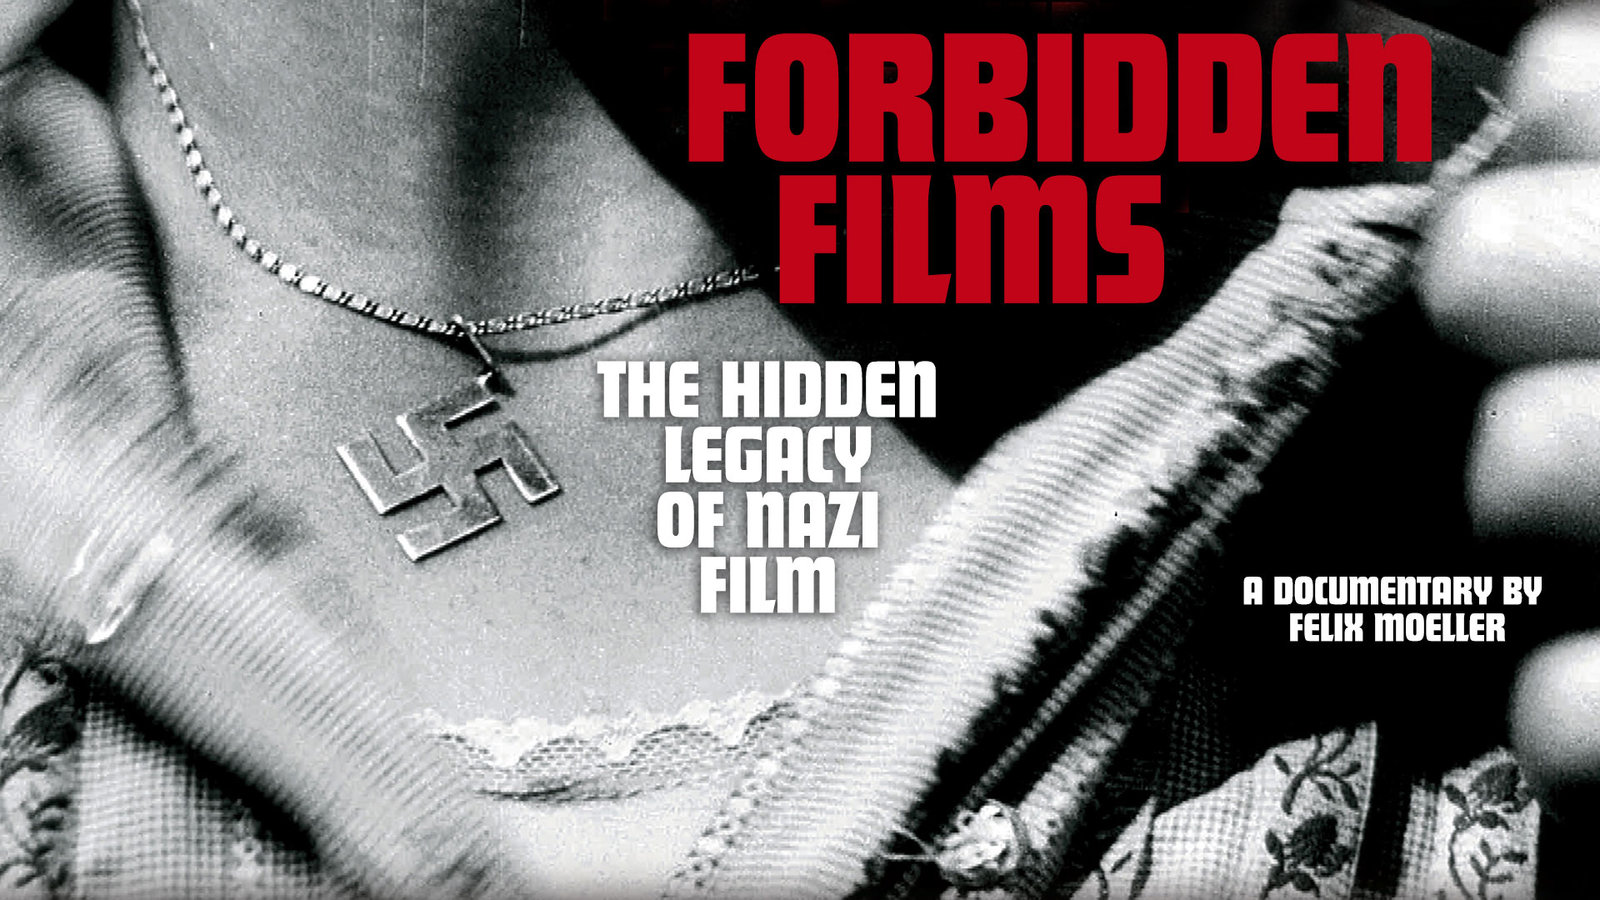 Forbidden Films - The Hidden Legacy of Nazi Film